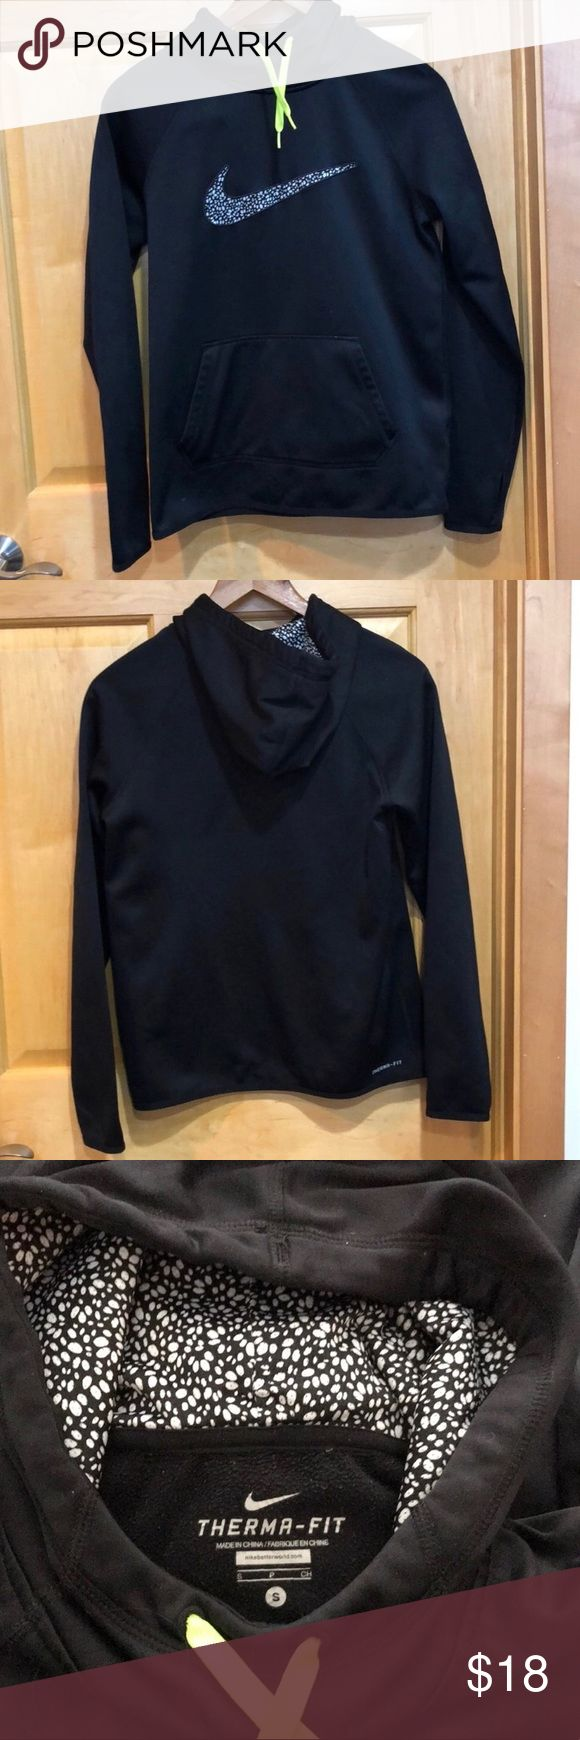 Nike Black Thermo-fit Hoodie Women Nike Black Thermo-fit Hoodie Women. Nike black hoodie with black & white pattern accent in swoosh and good. High neck. Lime green drawstrings. Thumbholes. Therma-fit. Kangaroo pocket. Therma-fits are more form fitting. Nike Tops Sweatshirts & Hoodies